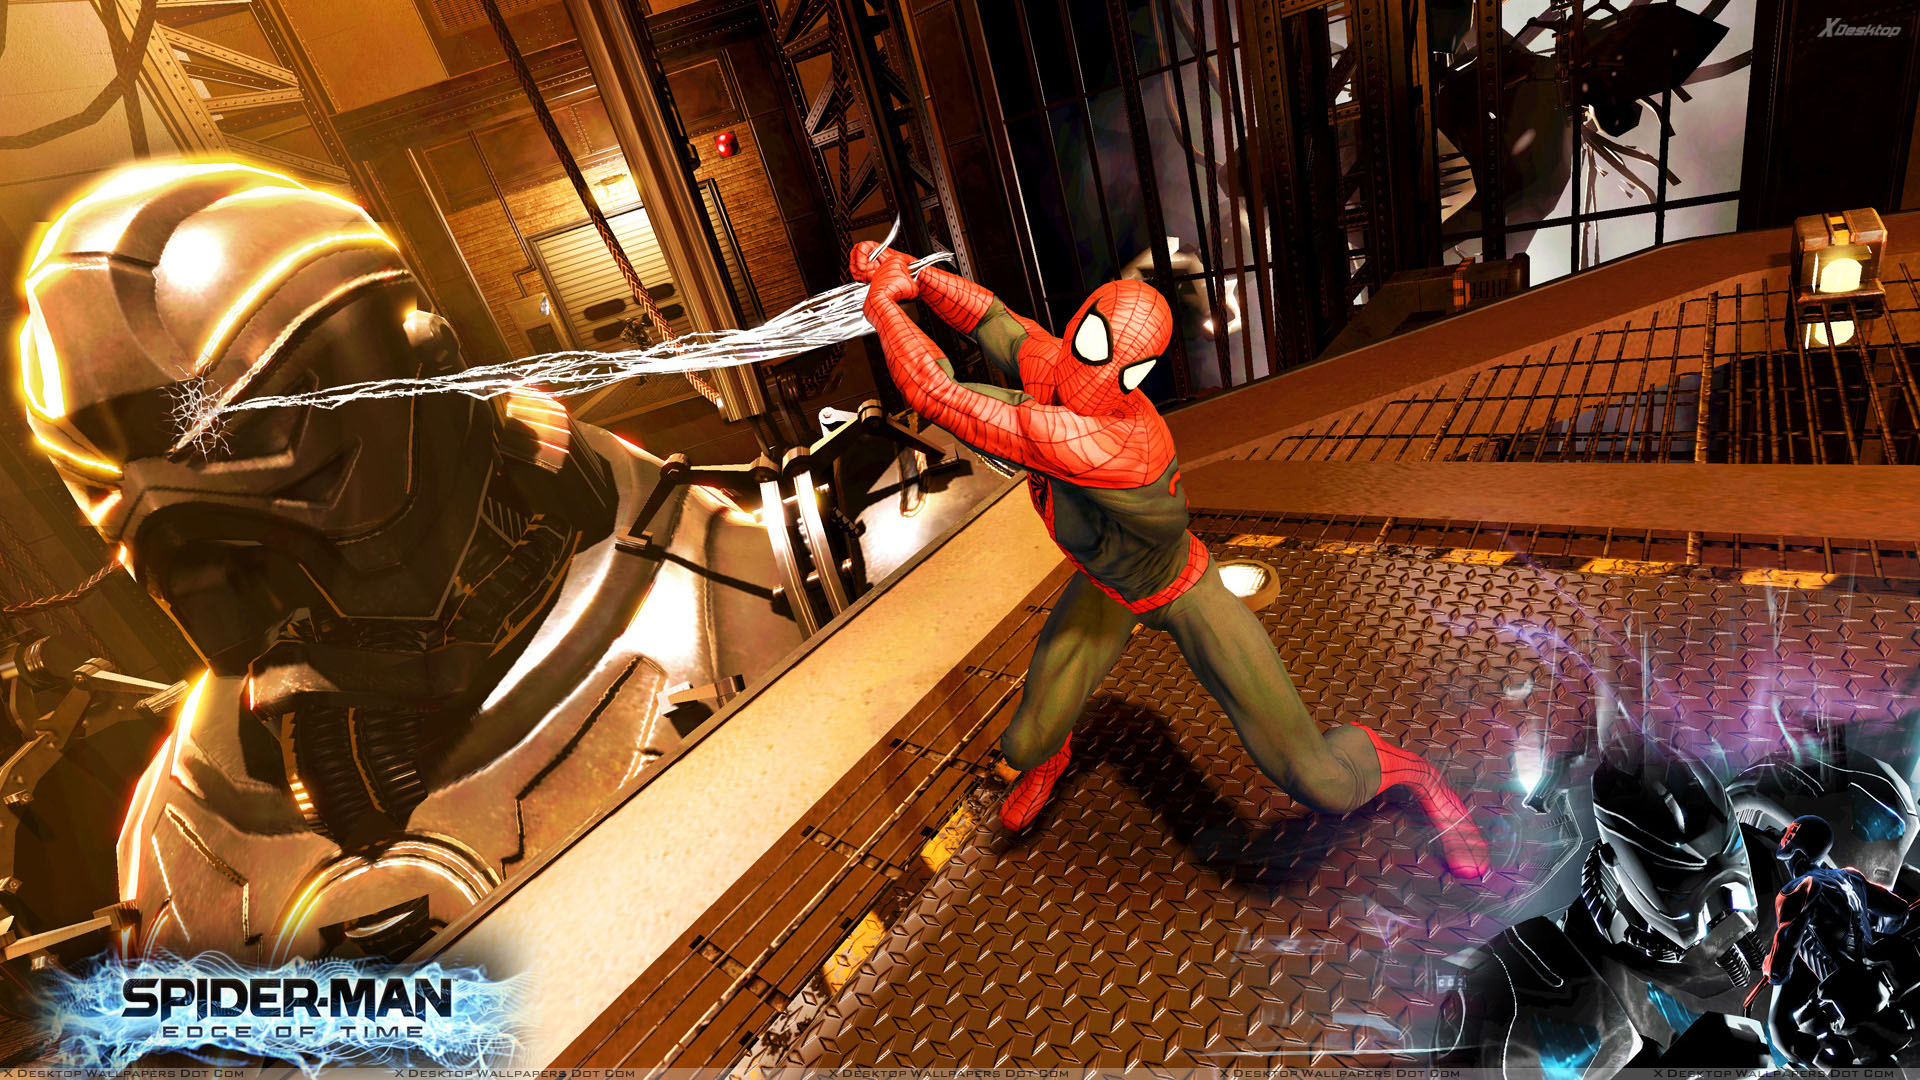 Spider Man Edge Of Time Wallpapers Photos Images In Hd